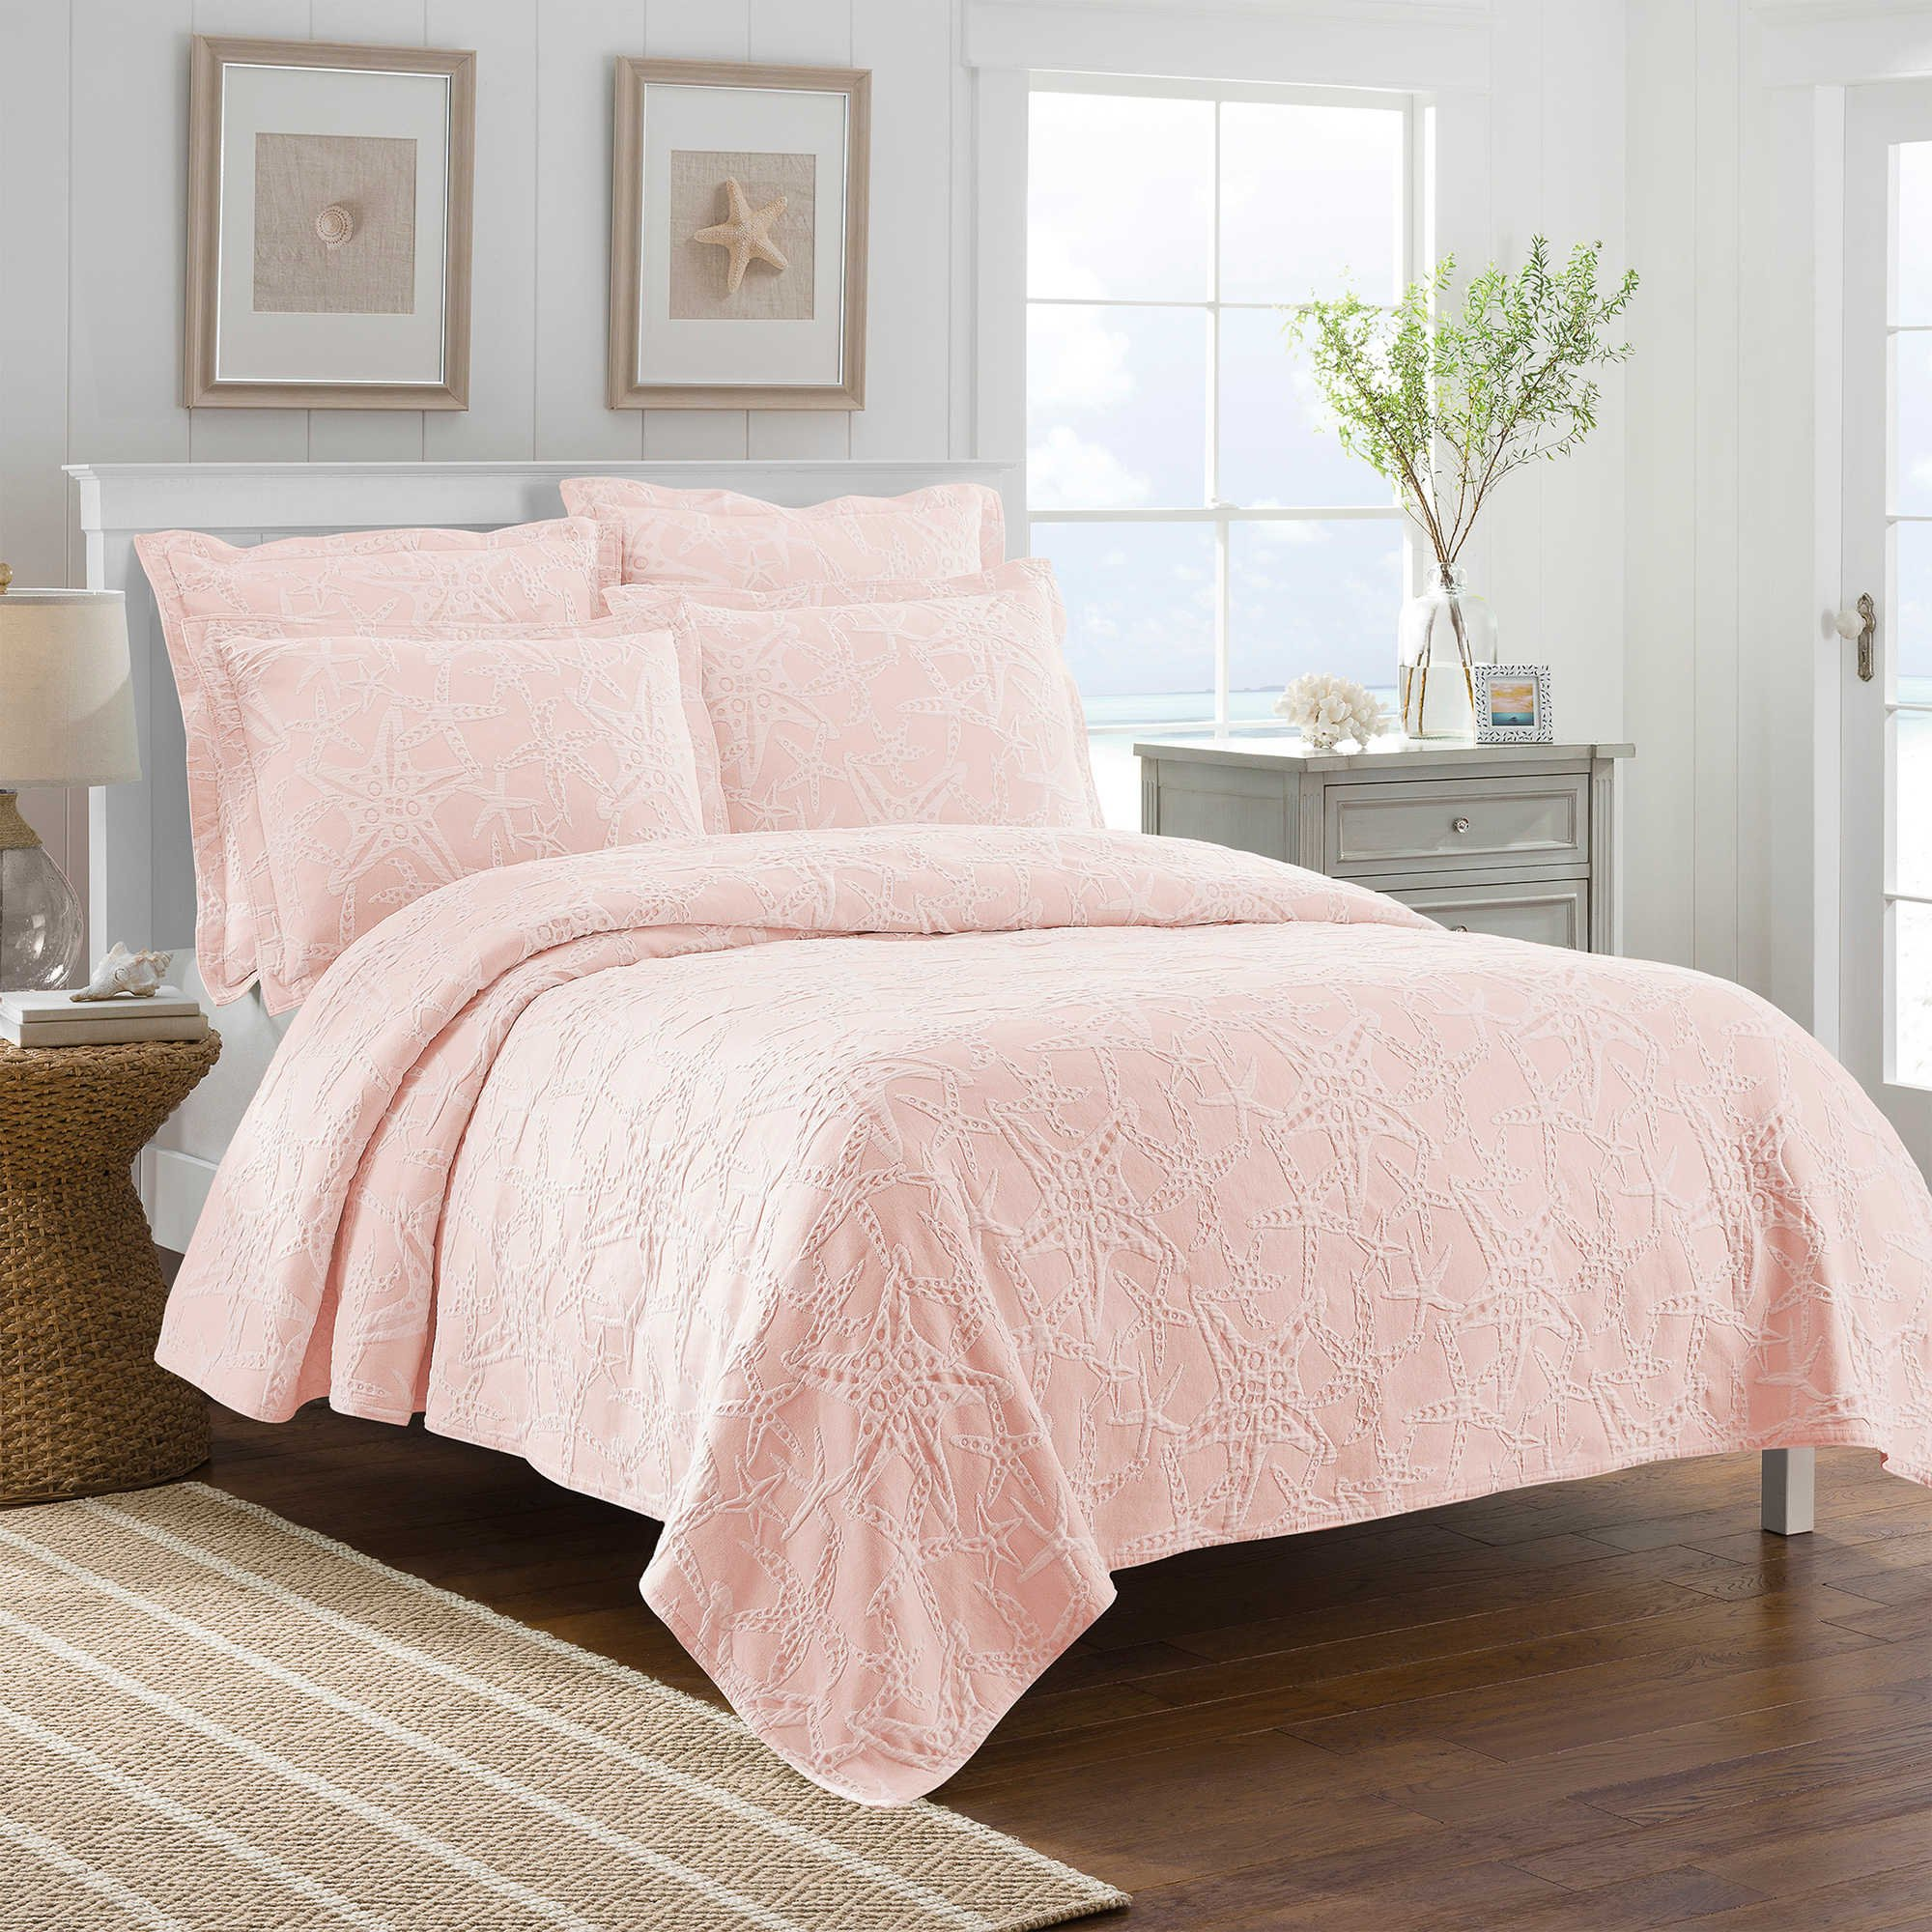 Lamont Home Calypso Twin Size Coverlet in Coral